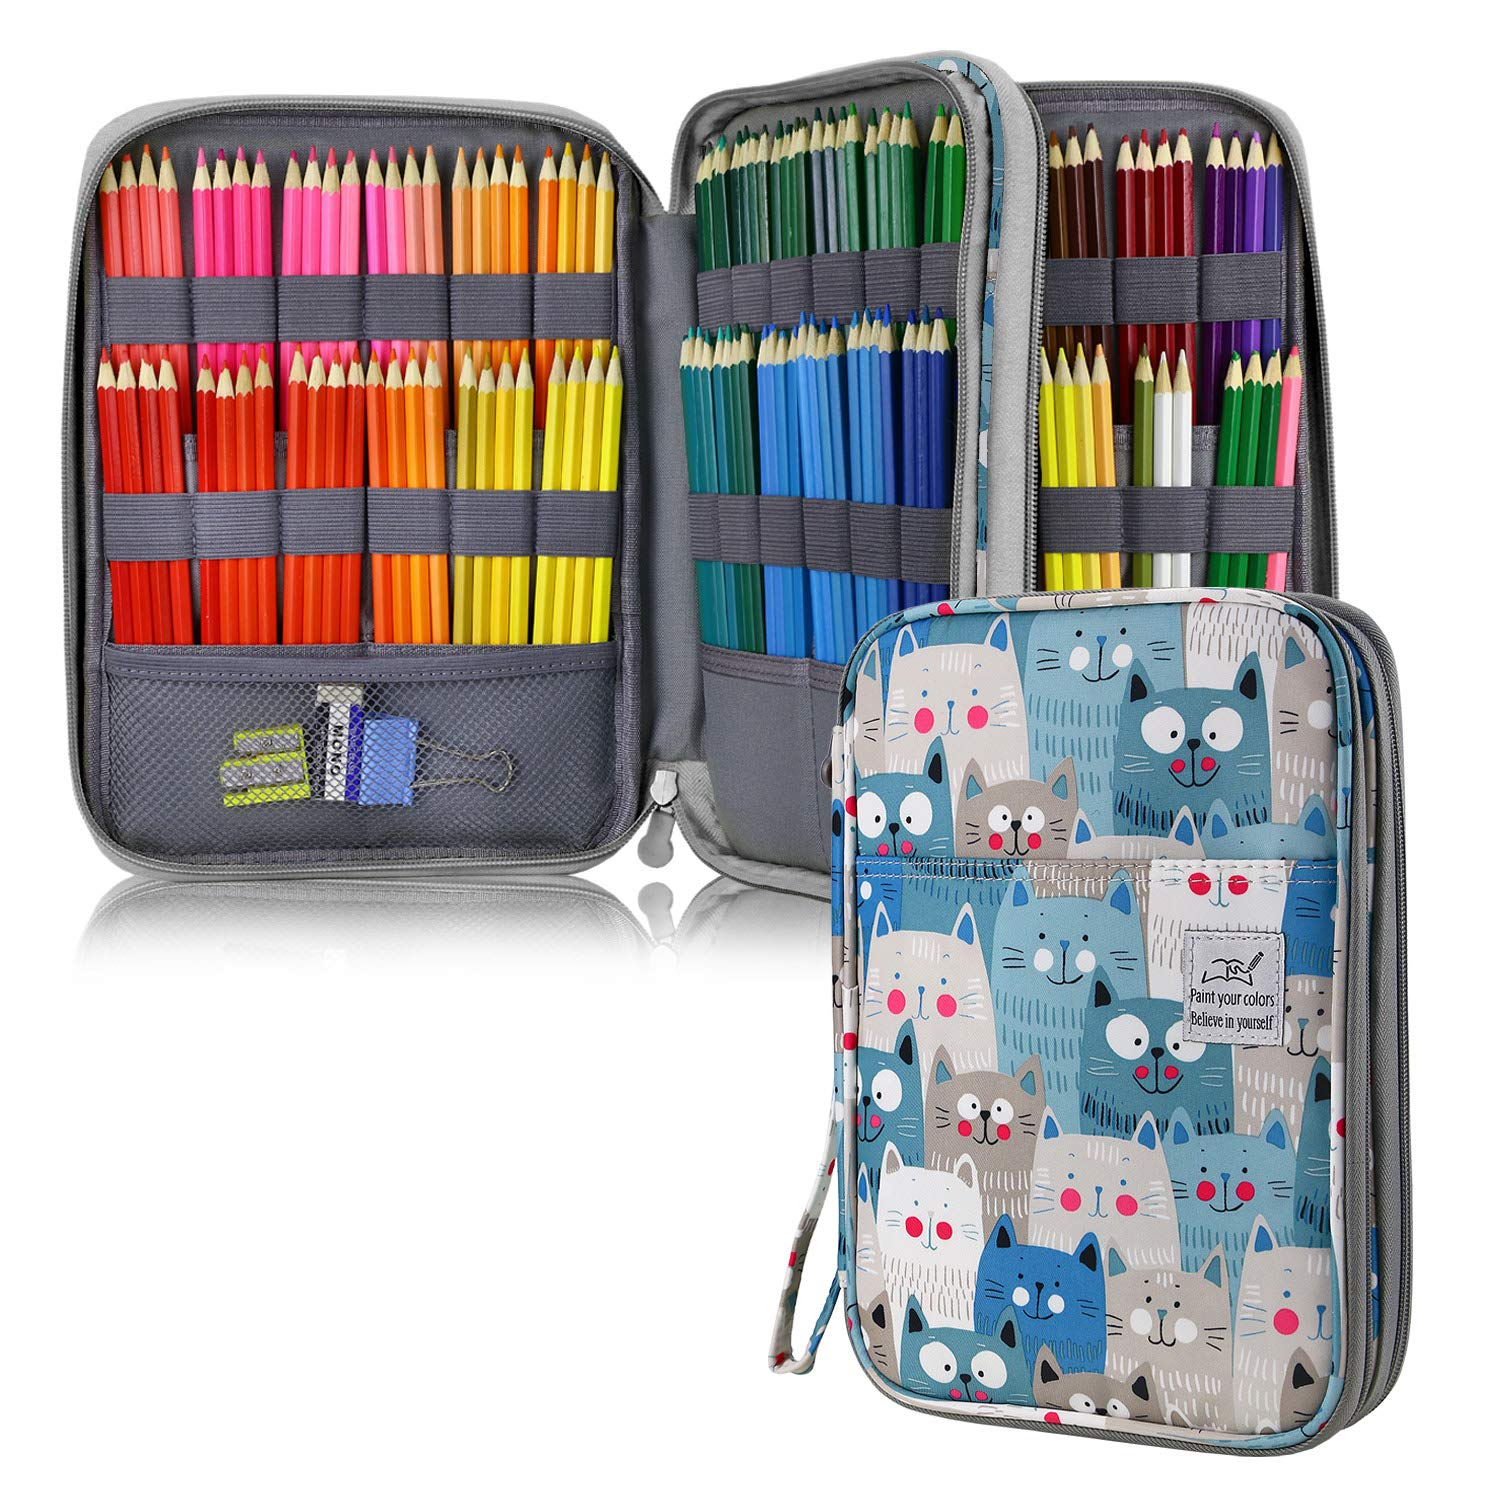 YOUSHARES 192 Slots Colored Pencil Case, Large Capacity Pencil Holder Pen Organizer Bag with Zipper for Prismacolor Watercolor Coloring Pencils, Gel Pens for Student & Artist (Big-Faced Cat) by YOUSHARES